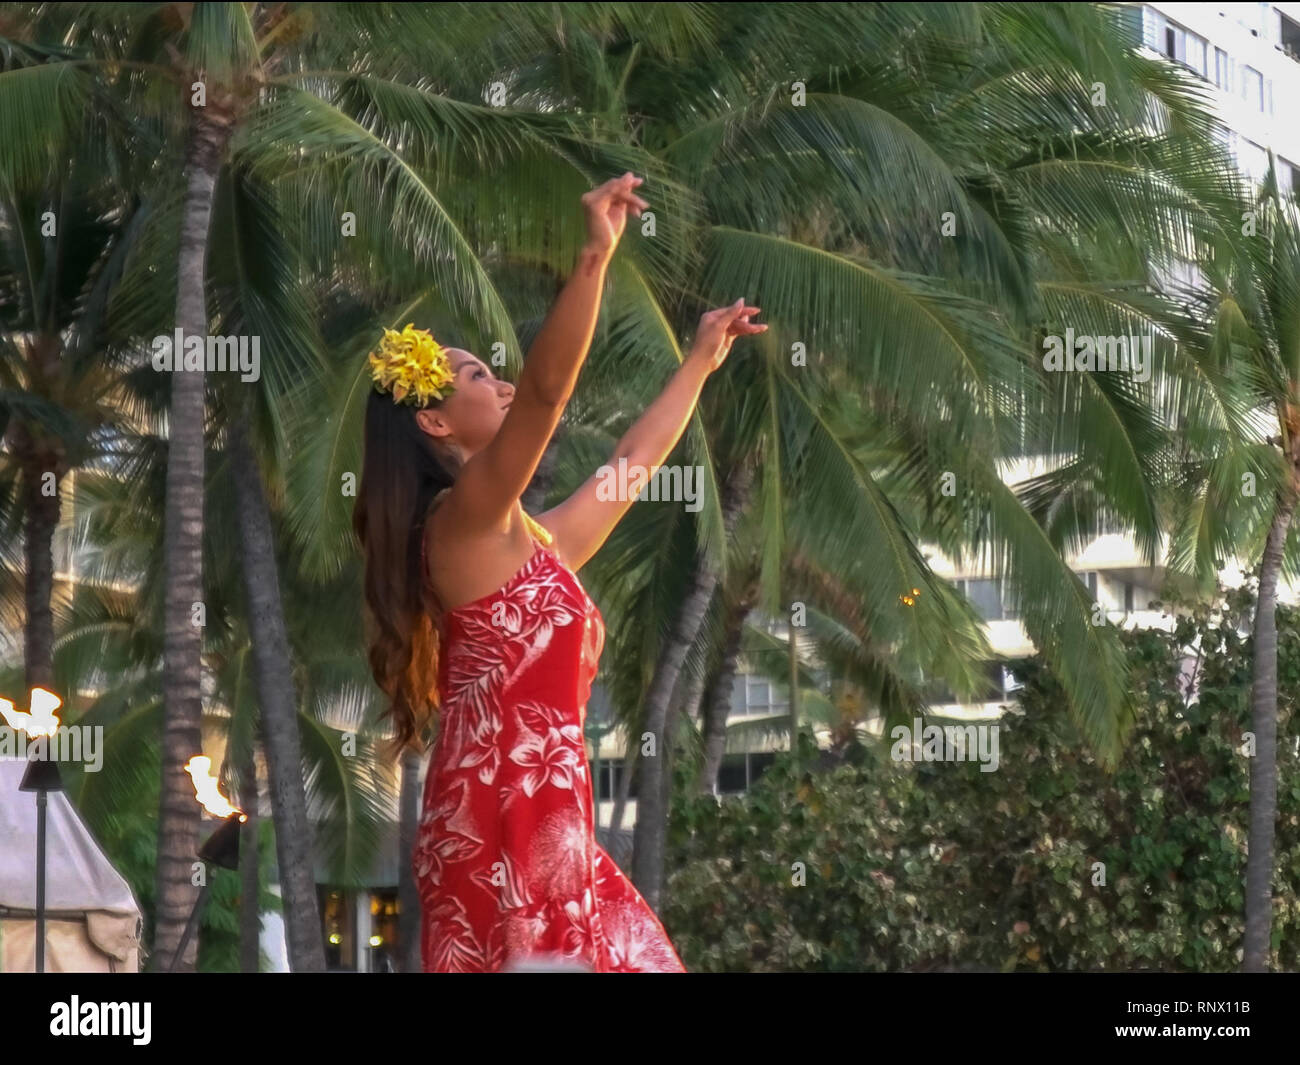 WAIKIKI, UNITED STATES OF AMERICA - AUGUST 6 2015: a female hula dancer in a red dress performing at waikiki - Stock Image